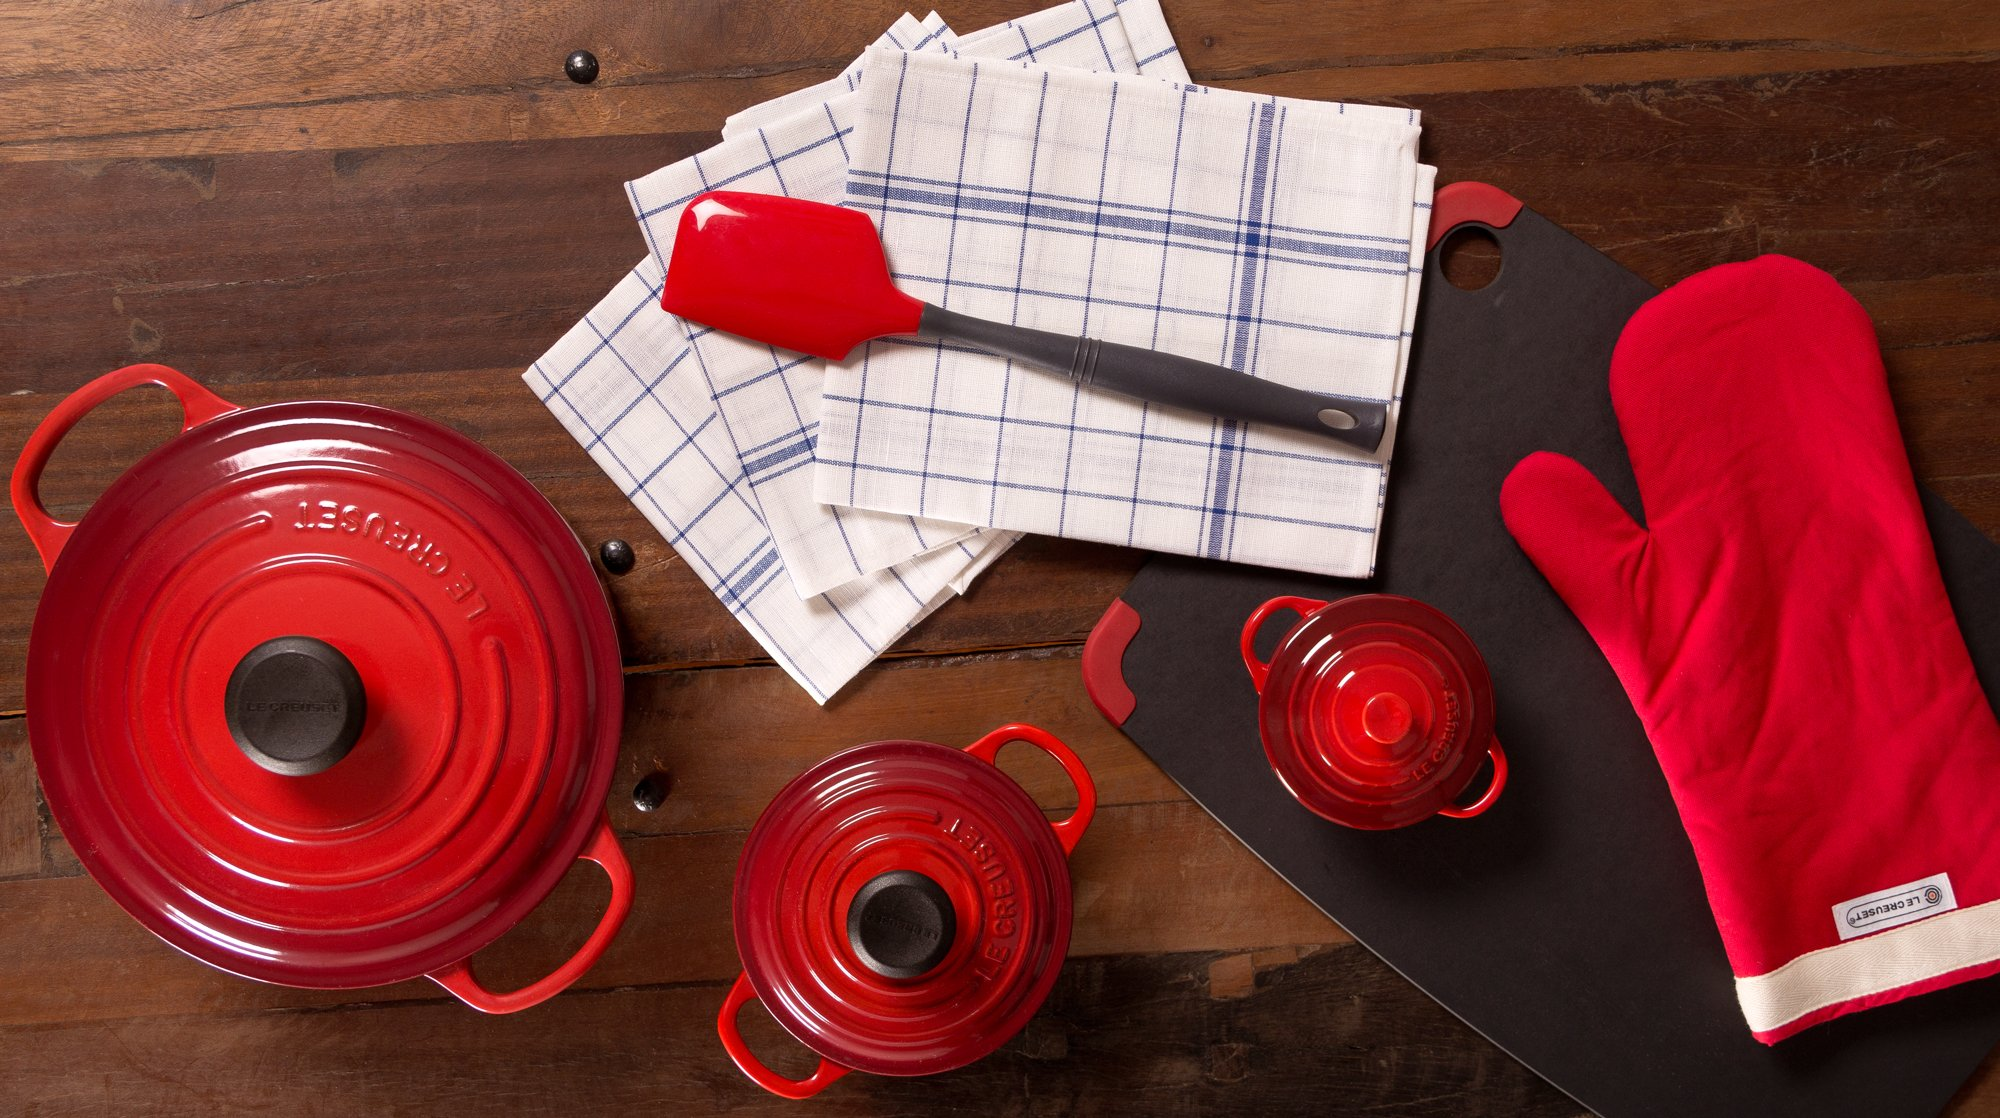 le-creuset-cooking-set-buy-me-once-hero-flickr-dinnerseries